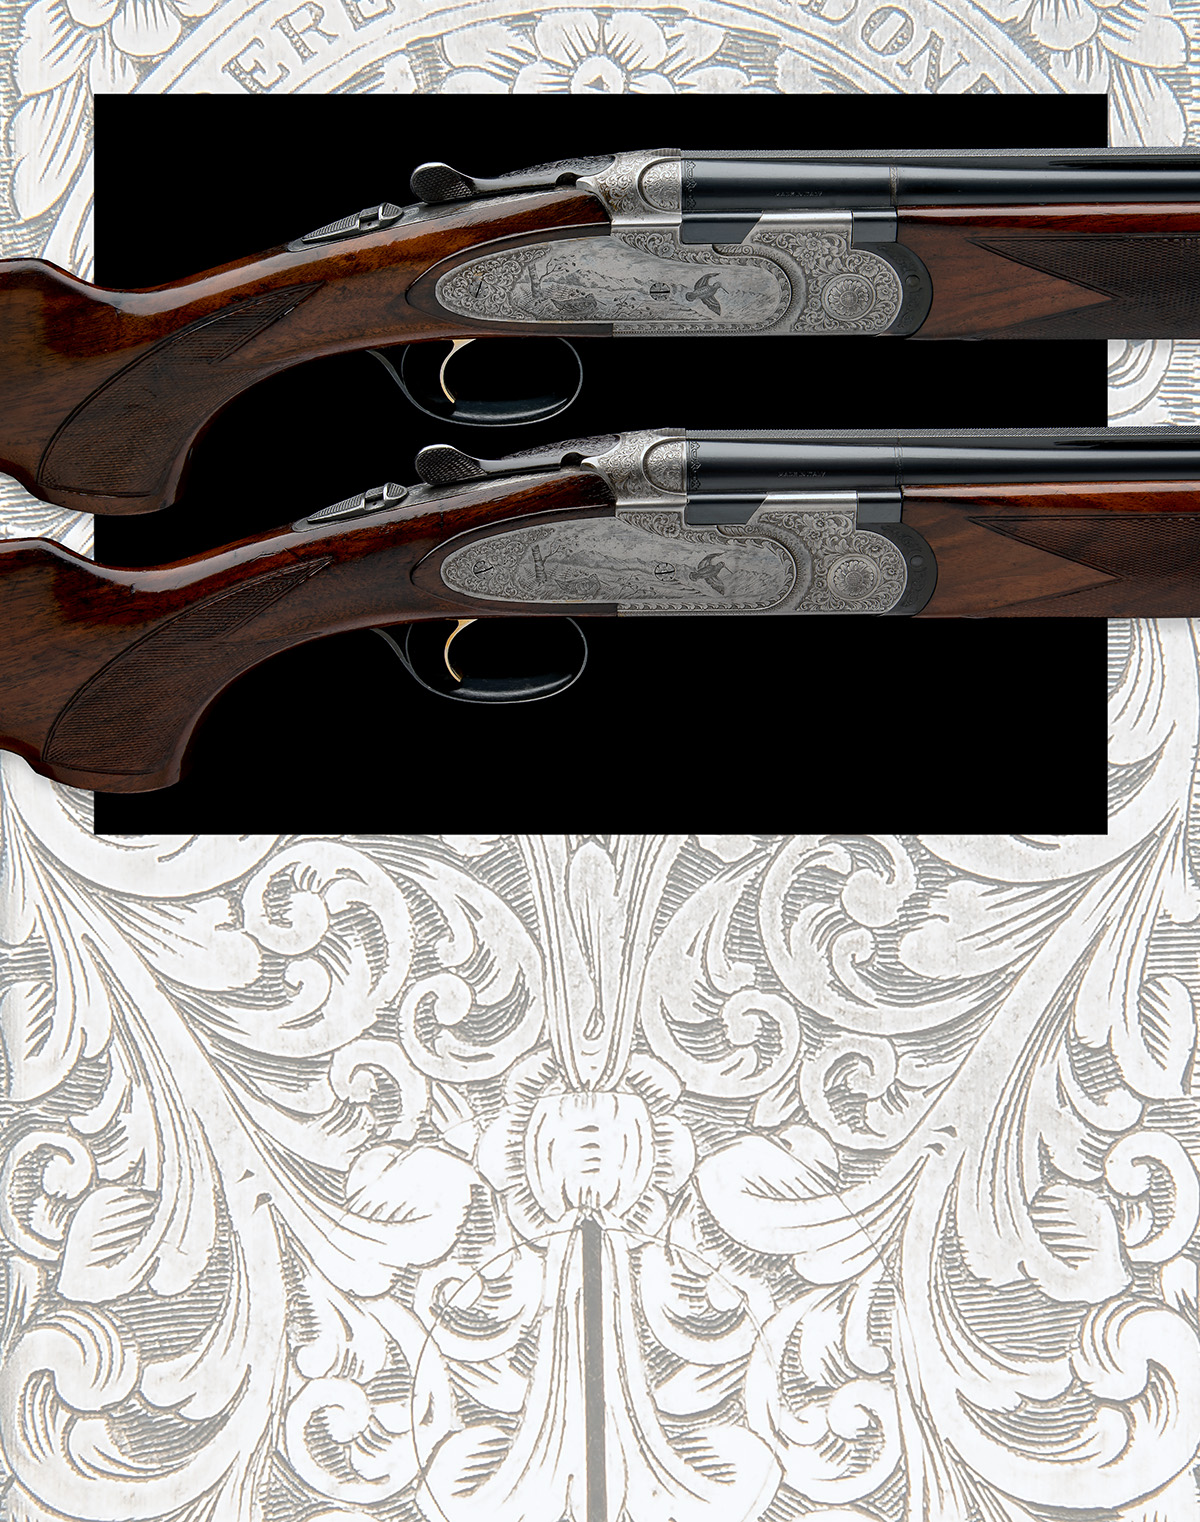 P. BERETTA A PAIR OF 20-BORE 'MOD. 687 EELL' SINGLE-TRIGGER OVER AND UNDER EJECTORS, serial no. - Image 10 of 10